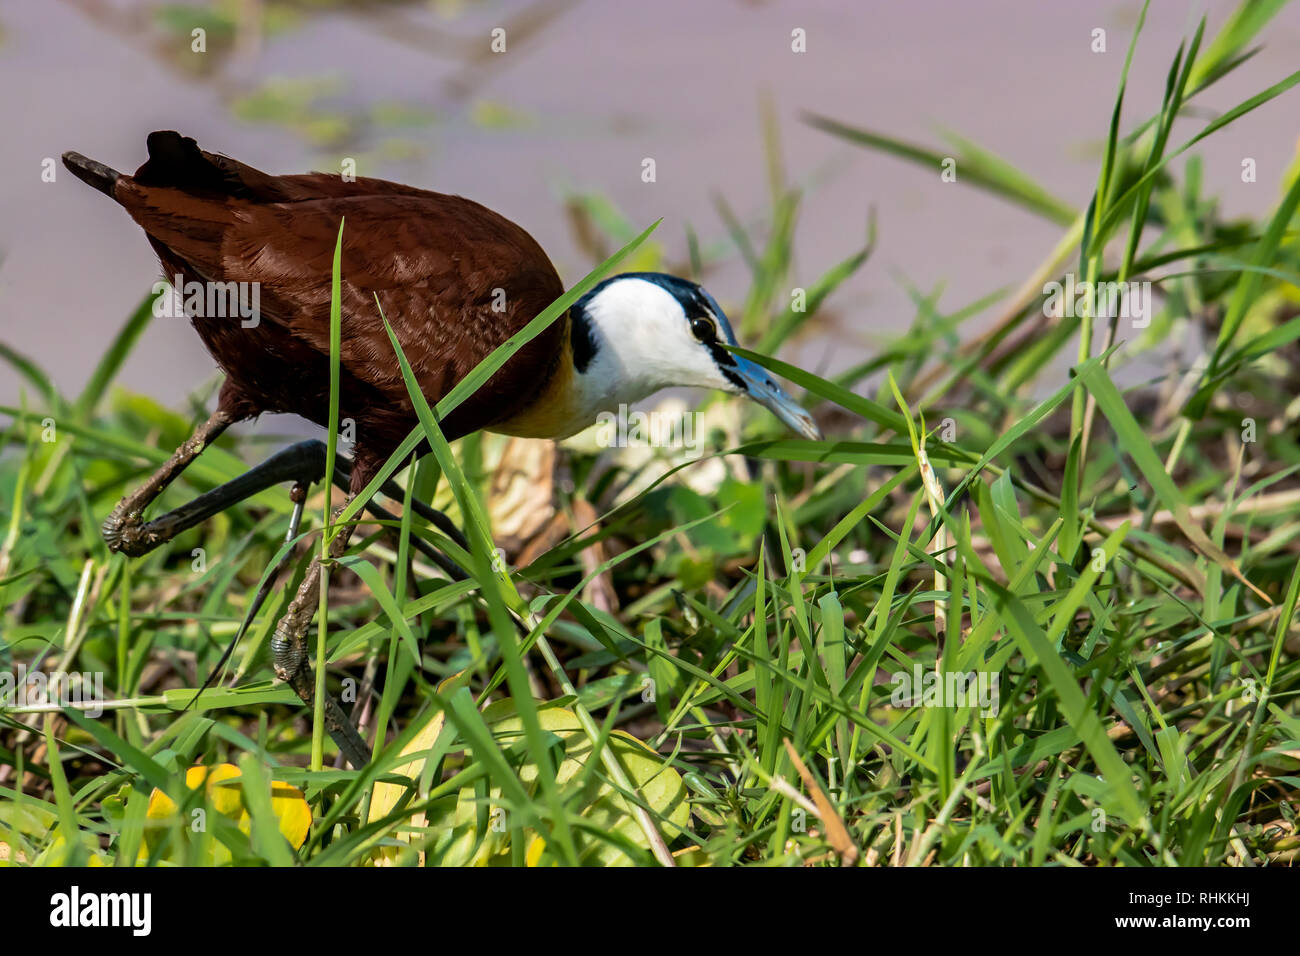 African jacana looking for food in the grass - Stock Image